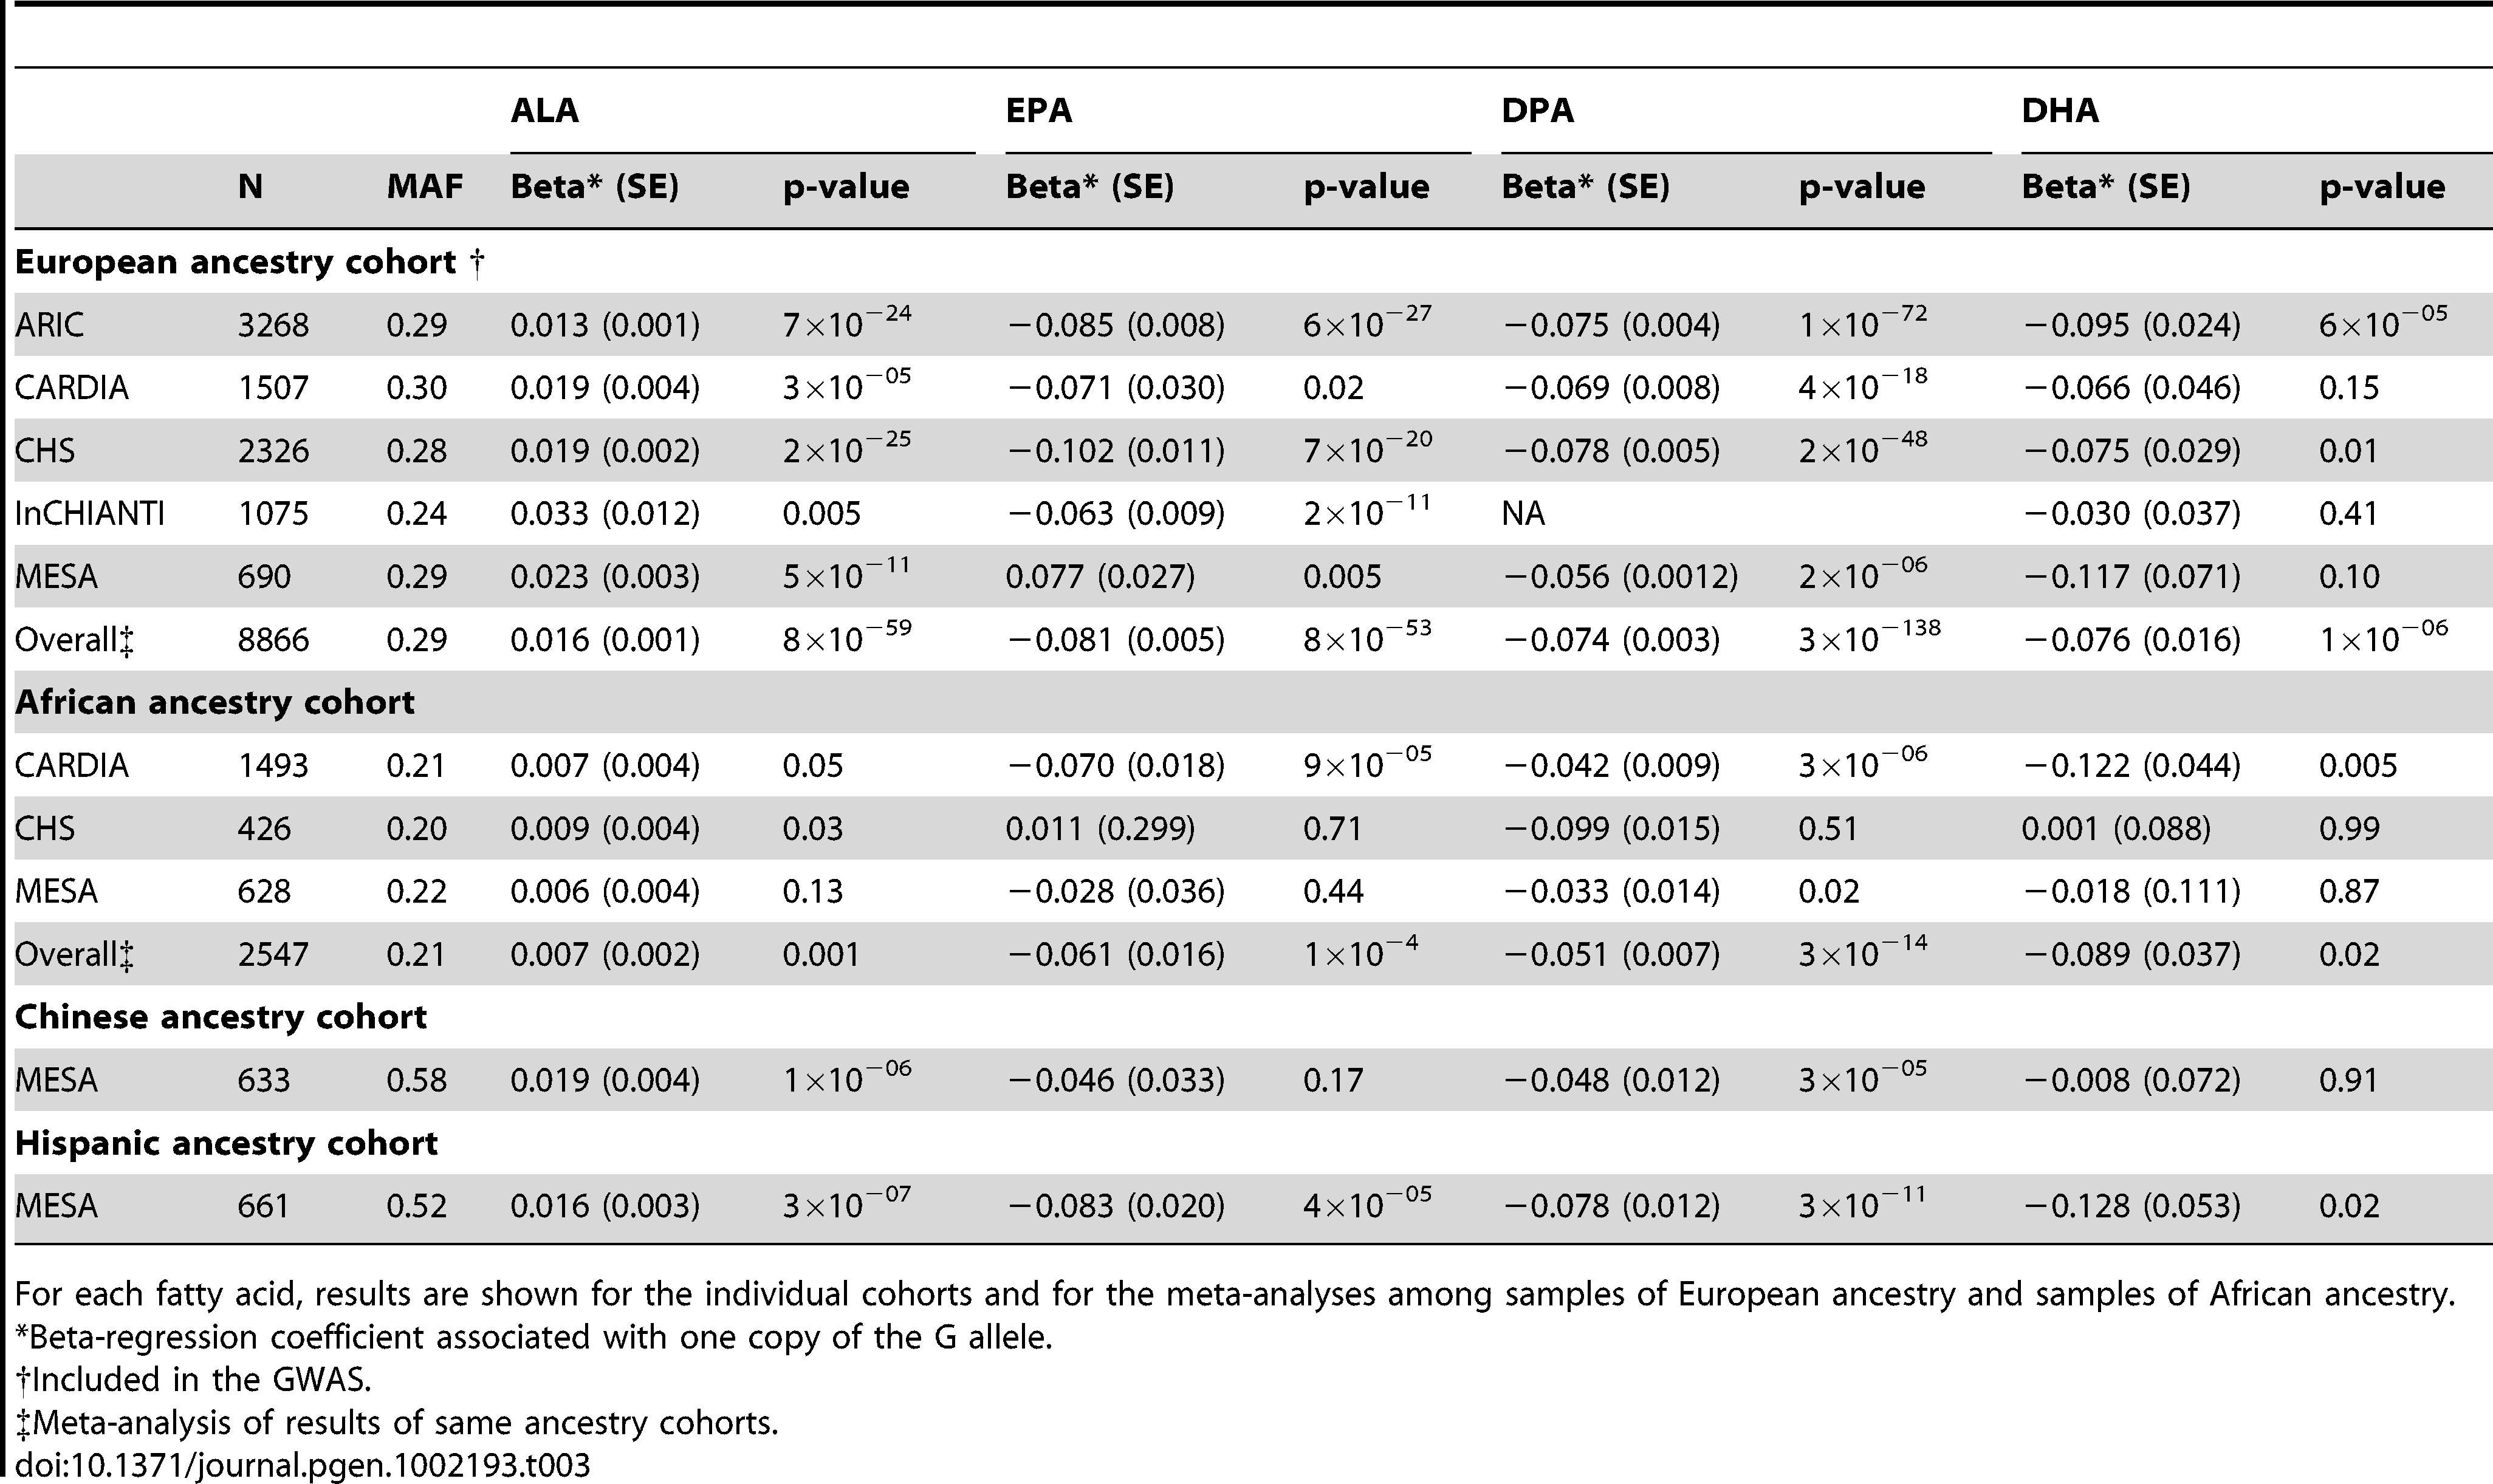 Associations of rs174548 (G allele) with n-3 polyunsaturated fatty acids in samples of different ancestries.